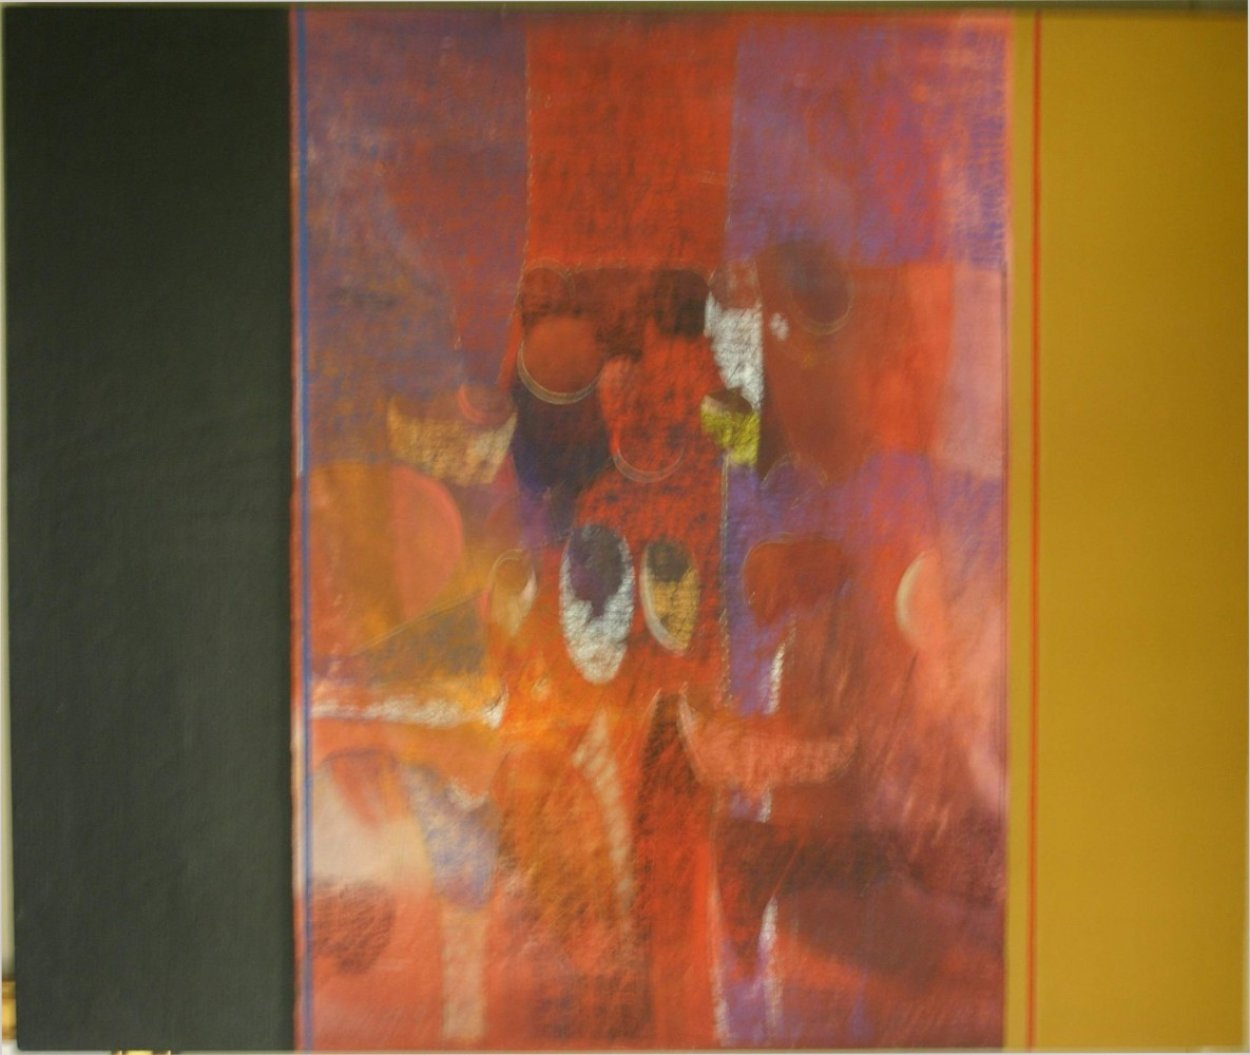 Untitled Painting 1971 36x45 Super Huge Original Painting by Paul Maxwell